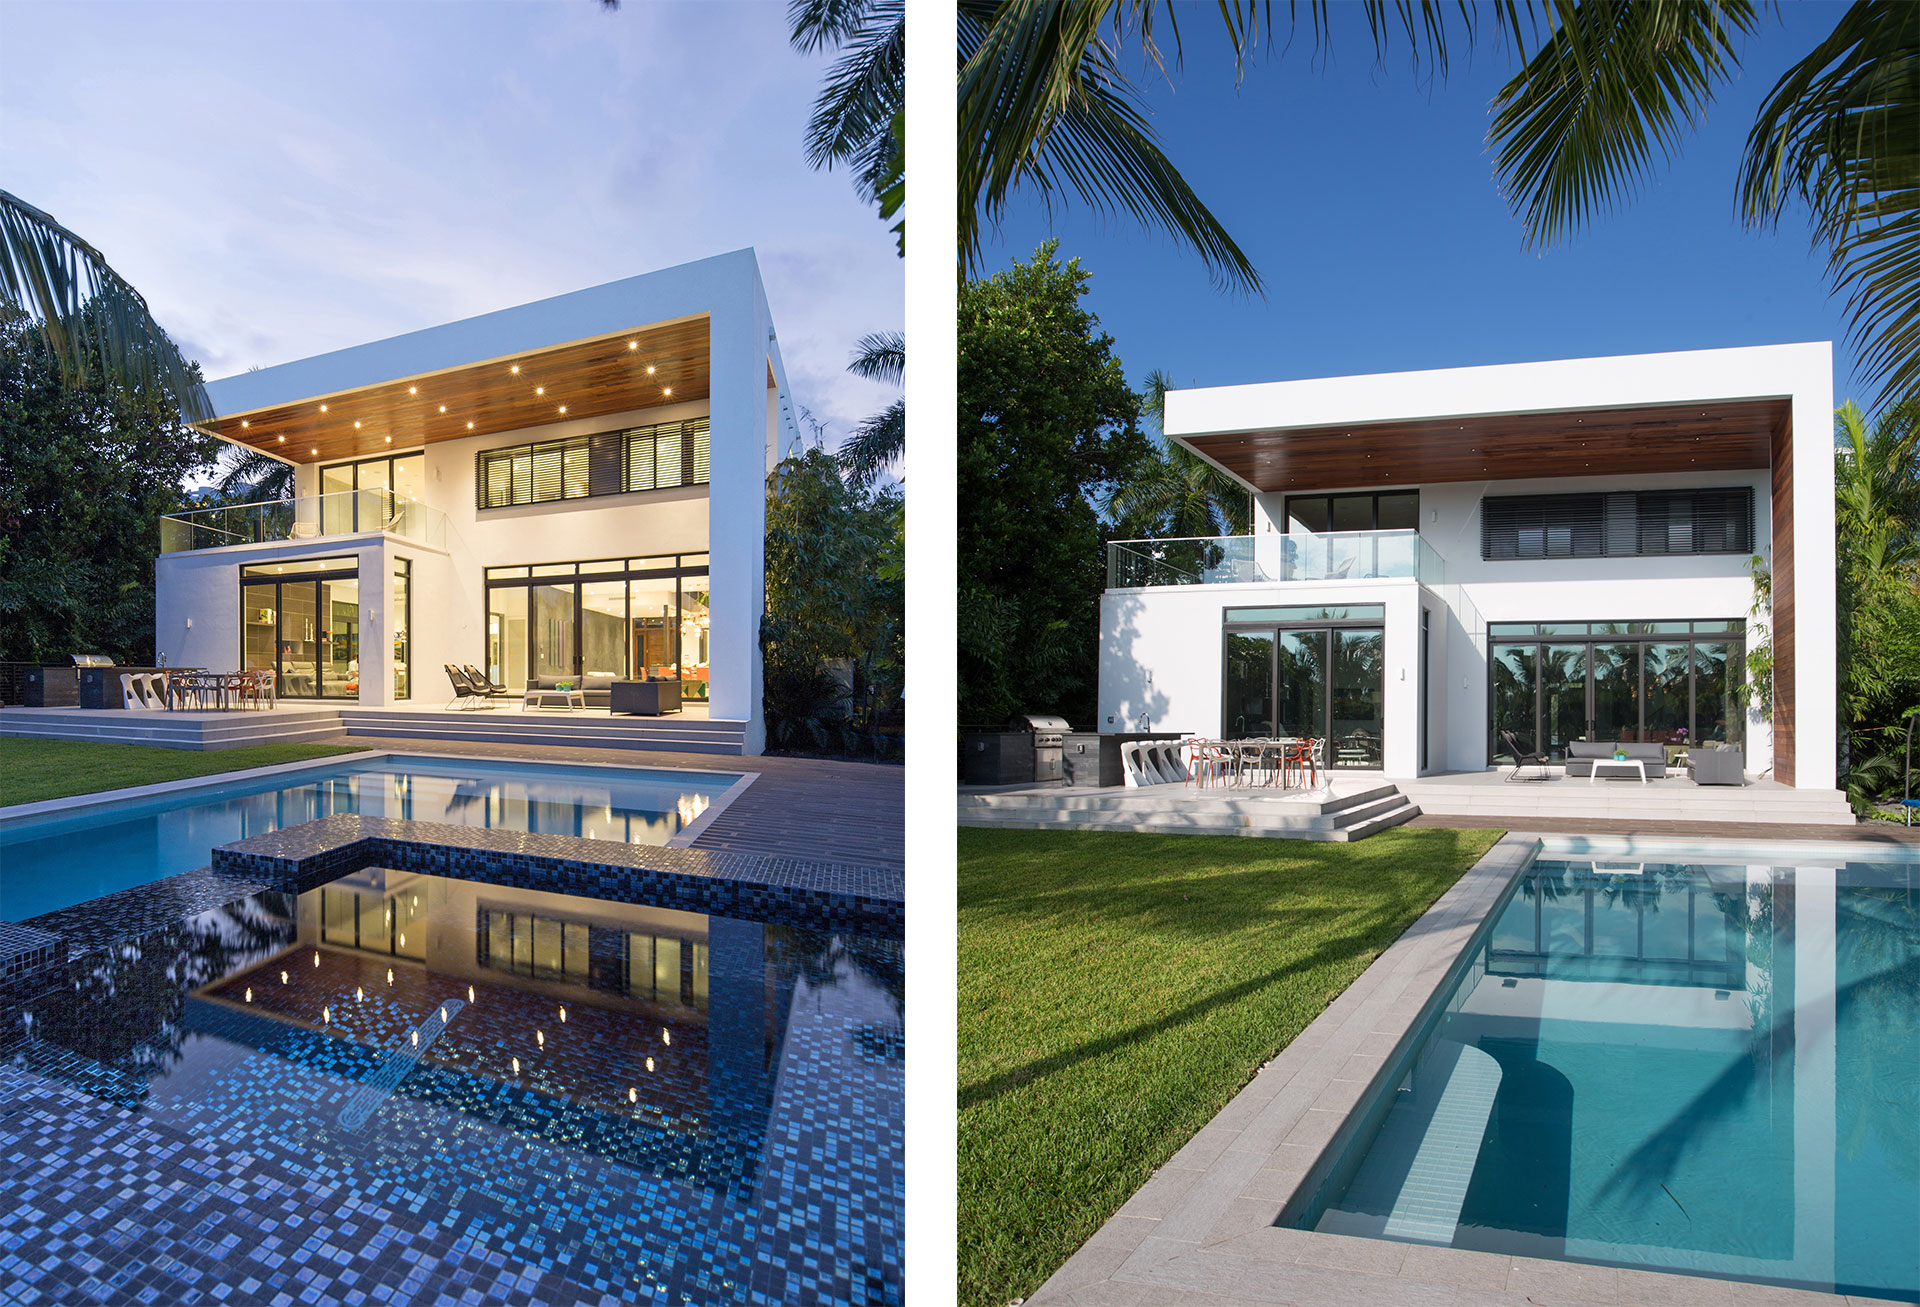 Exterior Architecture swimming pool view project in 475 Center Island Drive, Florida